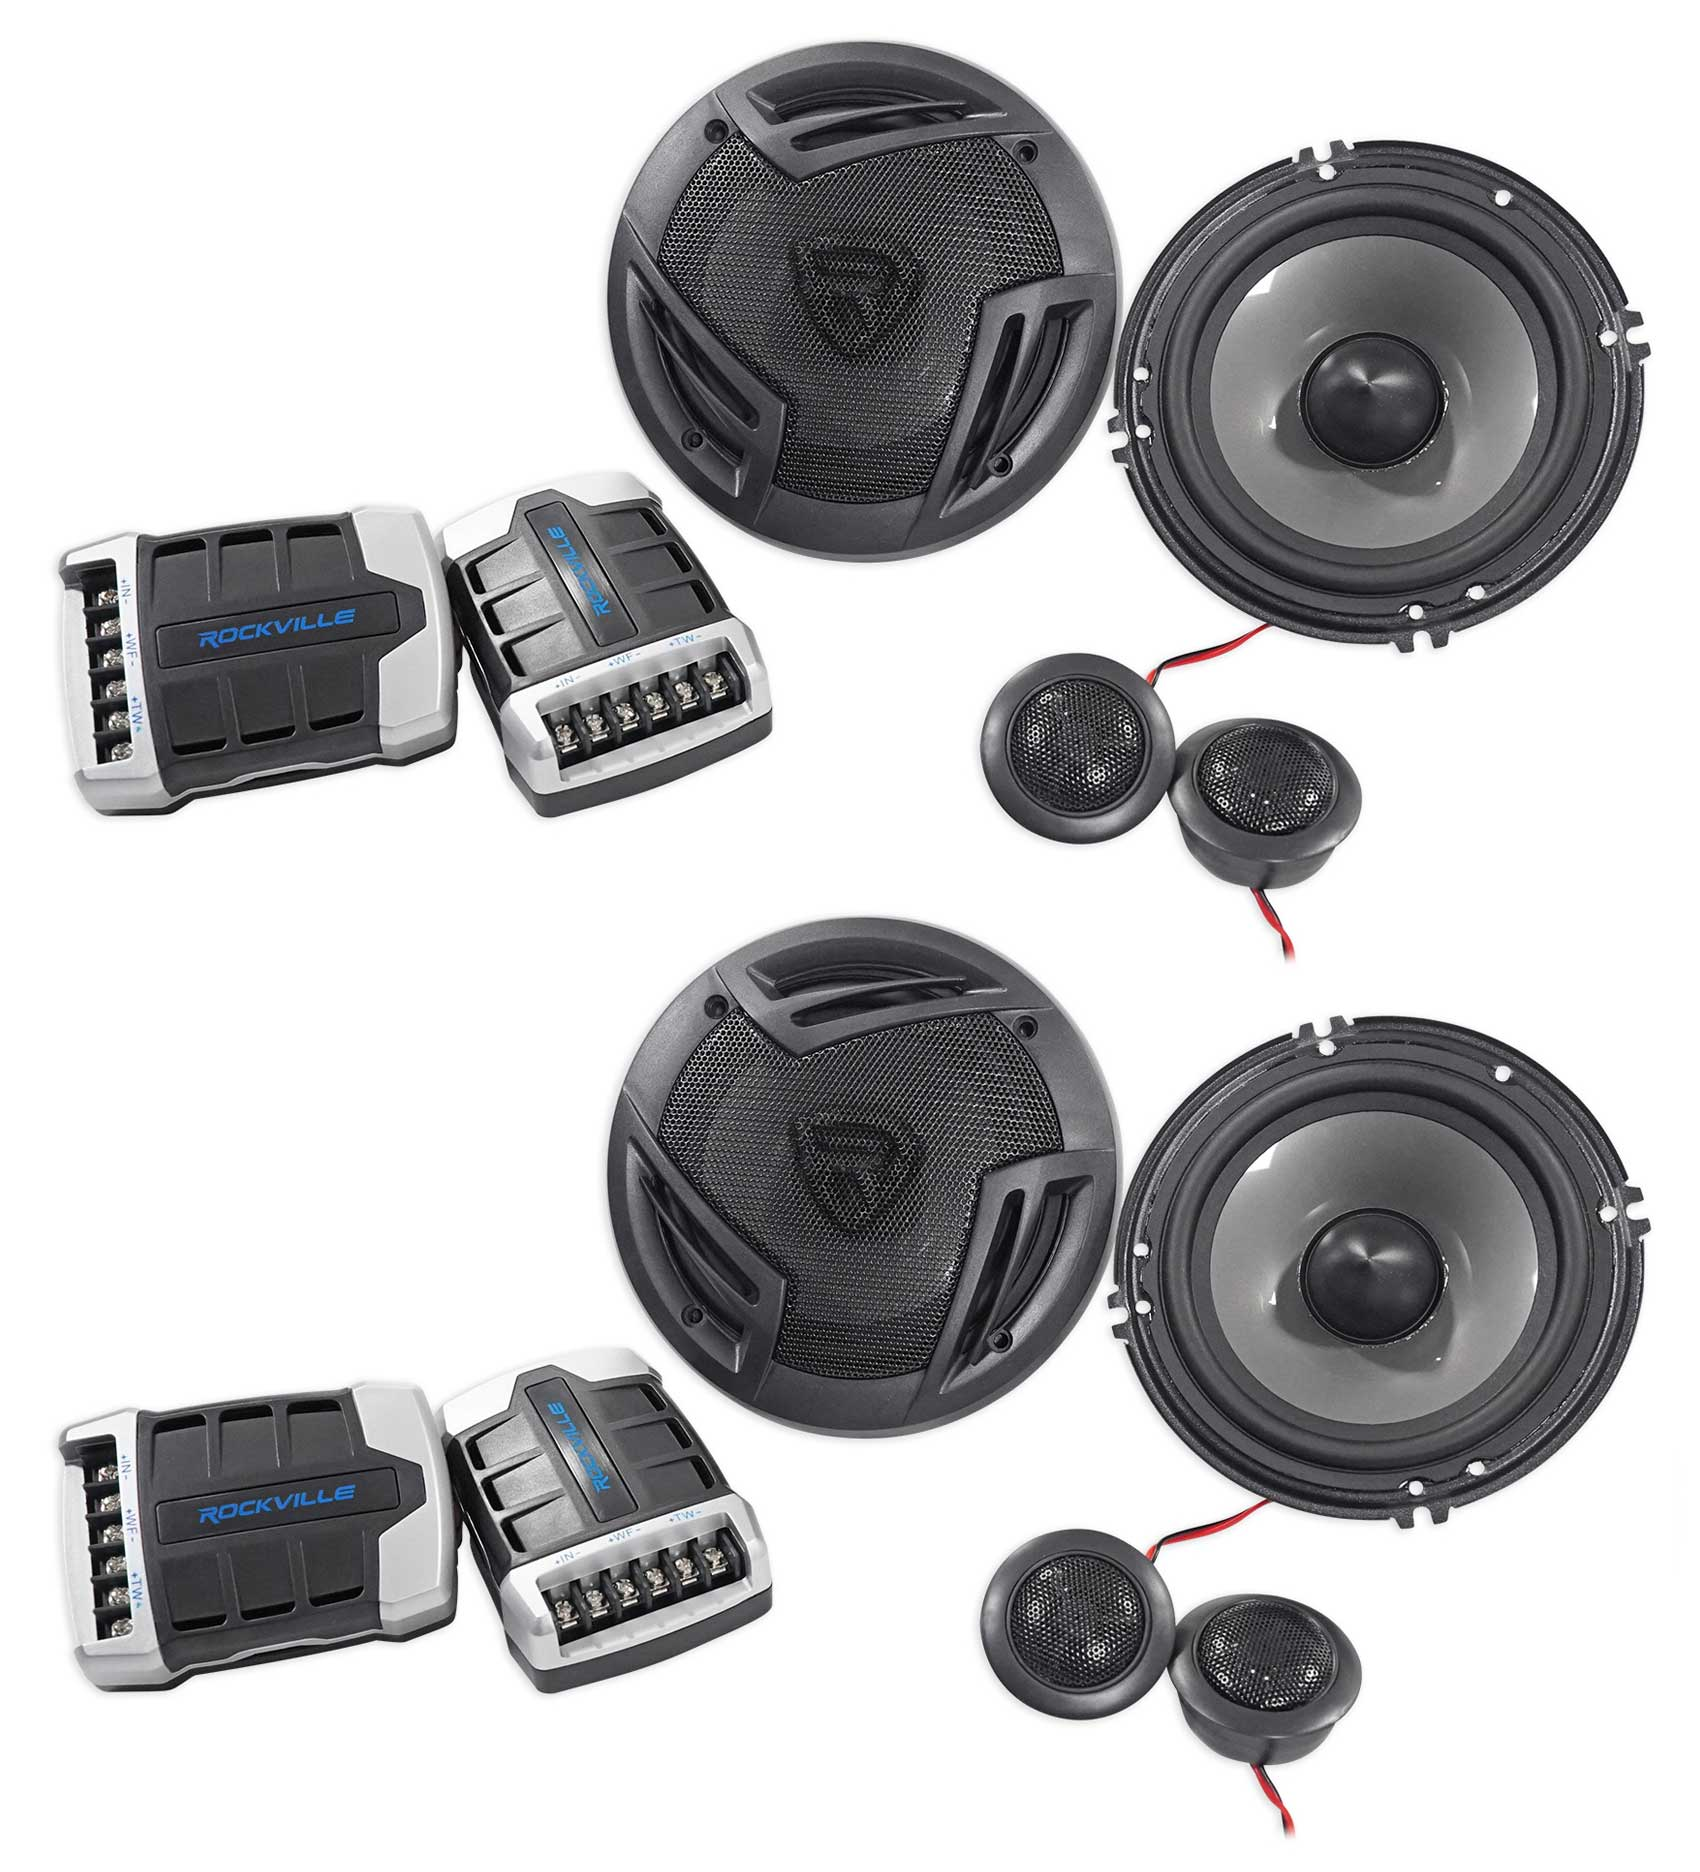 """(2) Pairs Rockville RV65.2C 6.5"""" Component Car Speakers 1500w/280w RMS CEA Rated"""